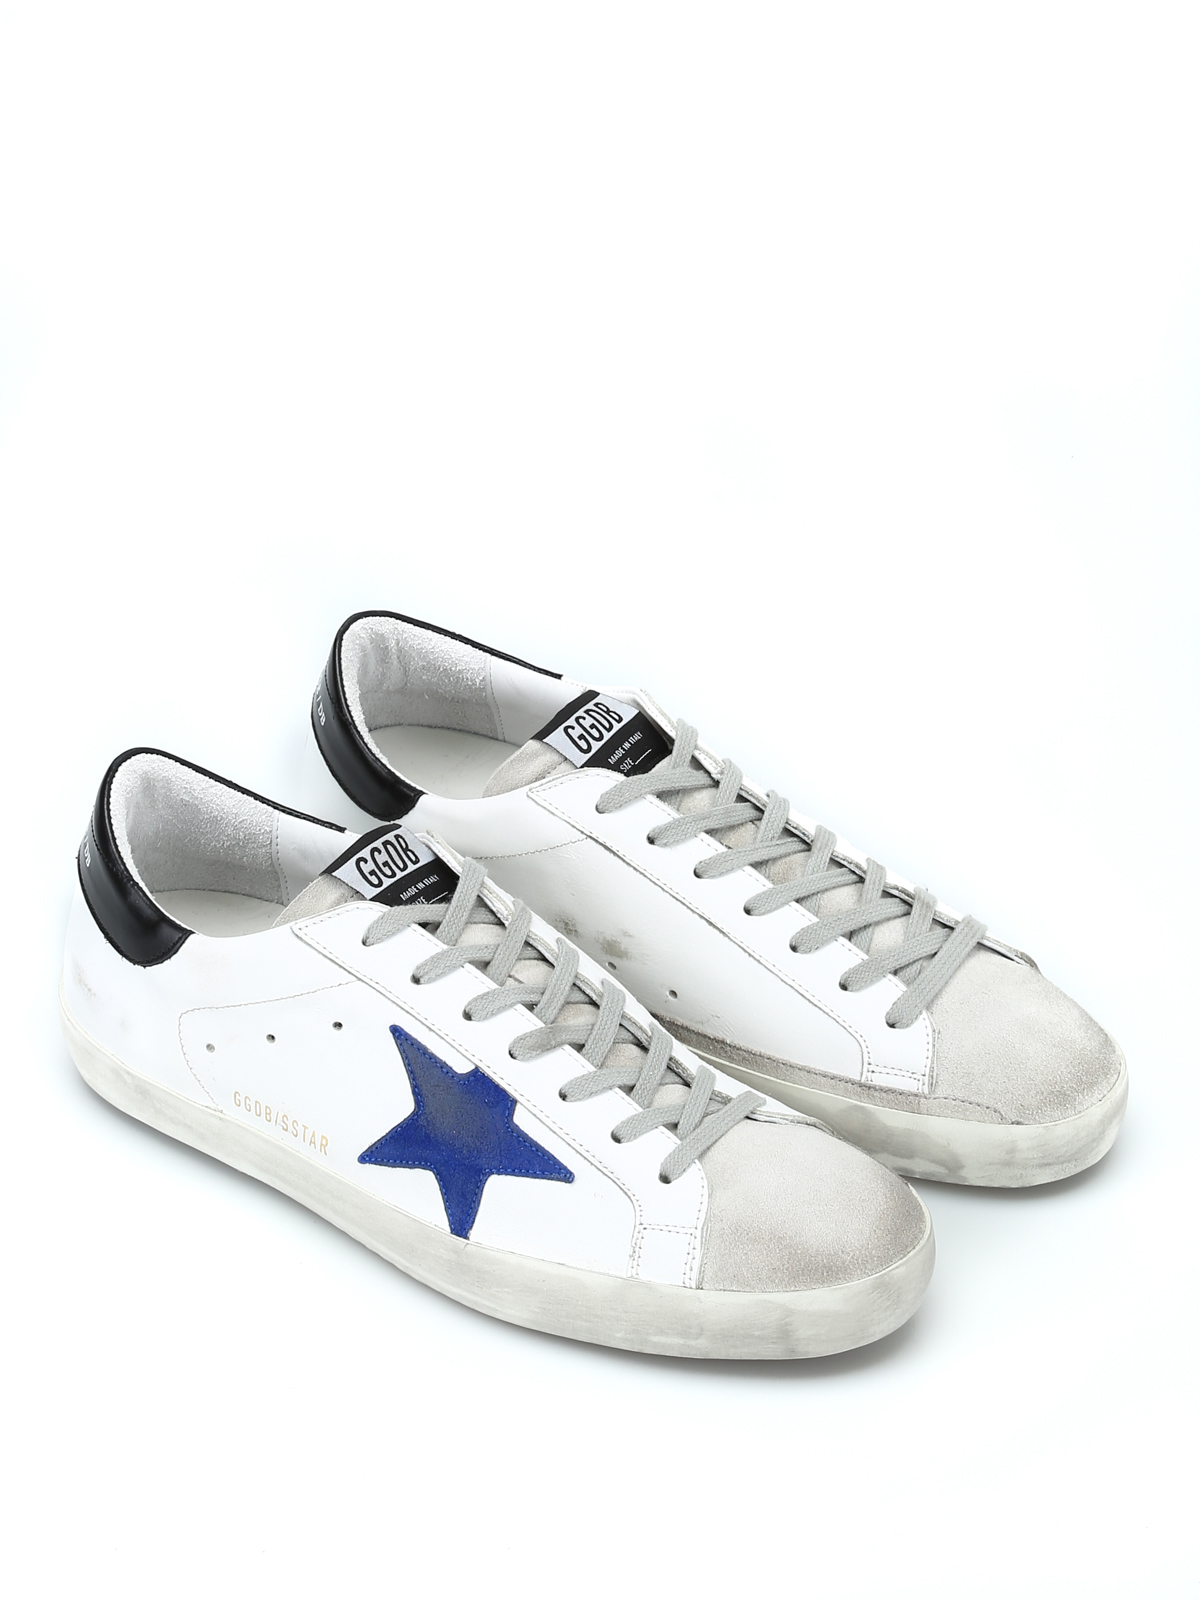 Golden Goose - Blue suede patch white